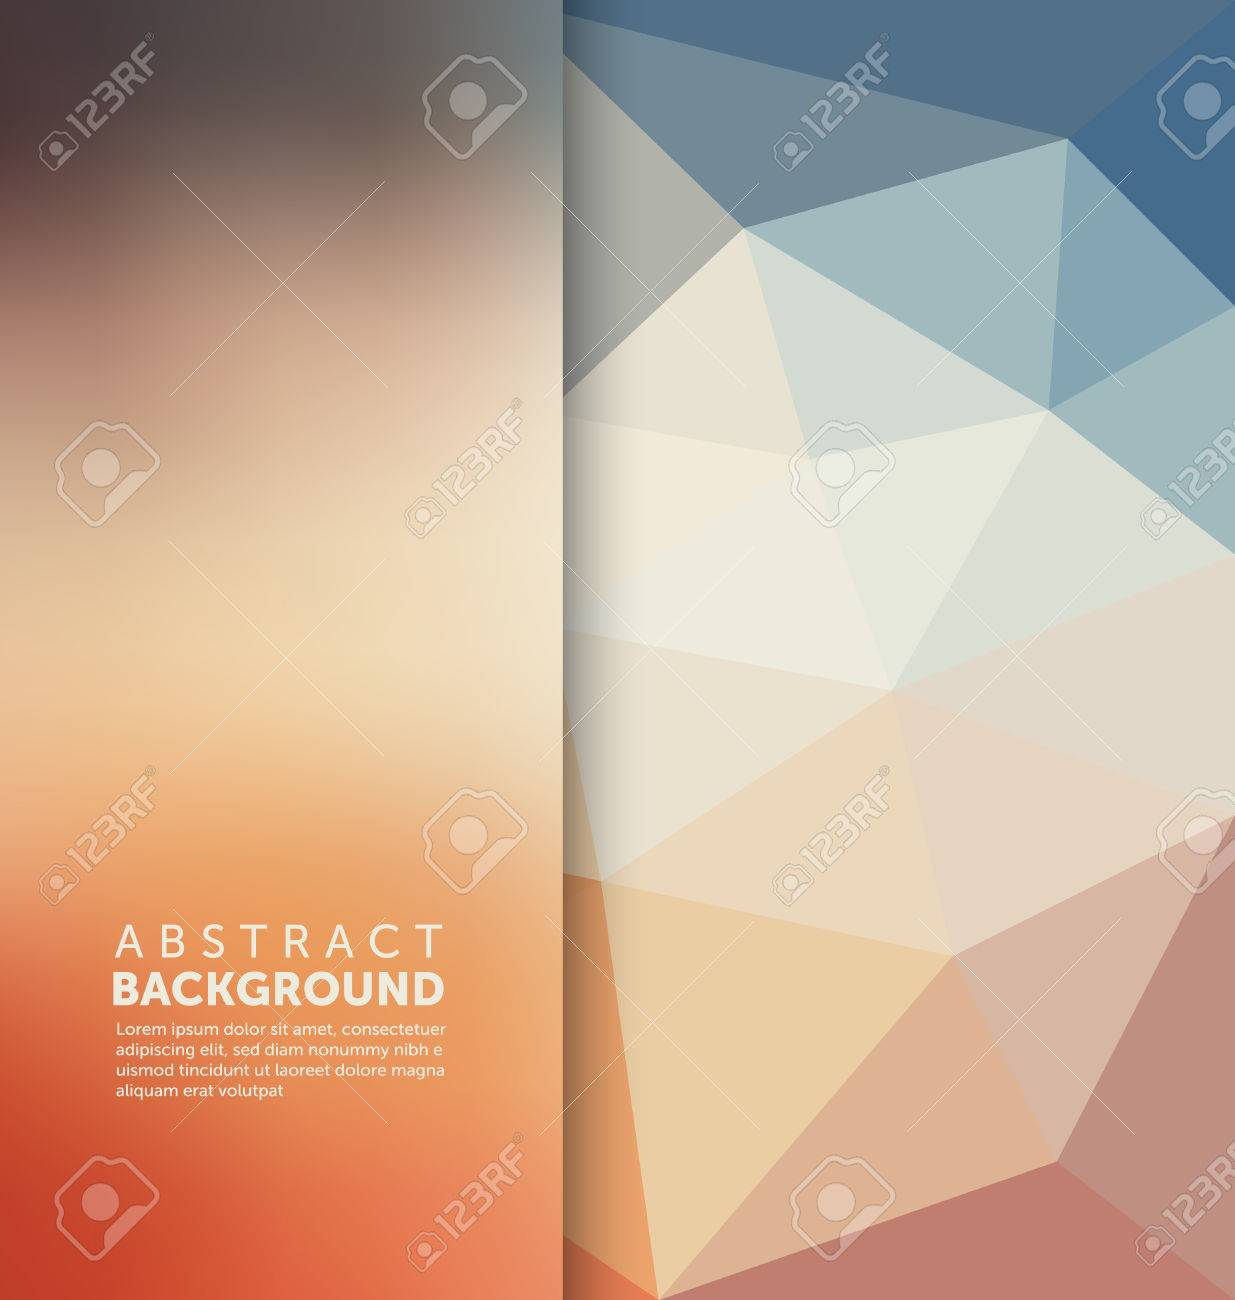 Abstract Background - Triangle and blurred banner design - 45168628